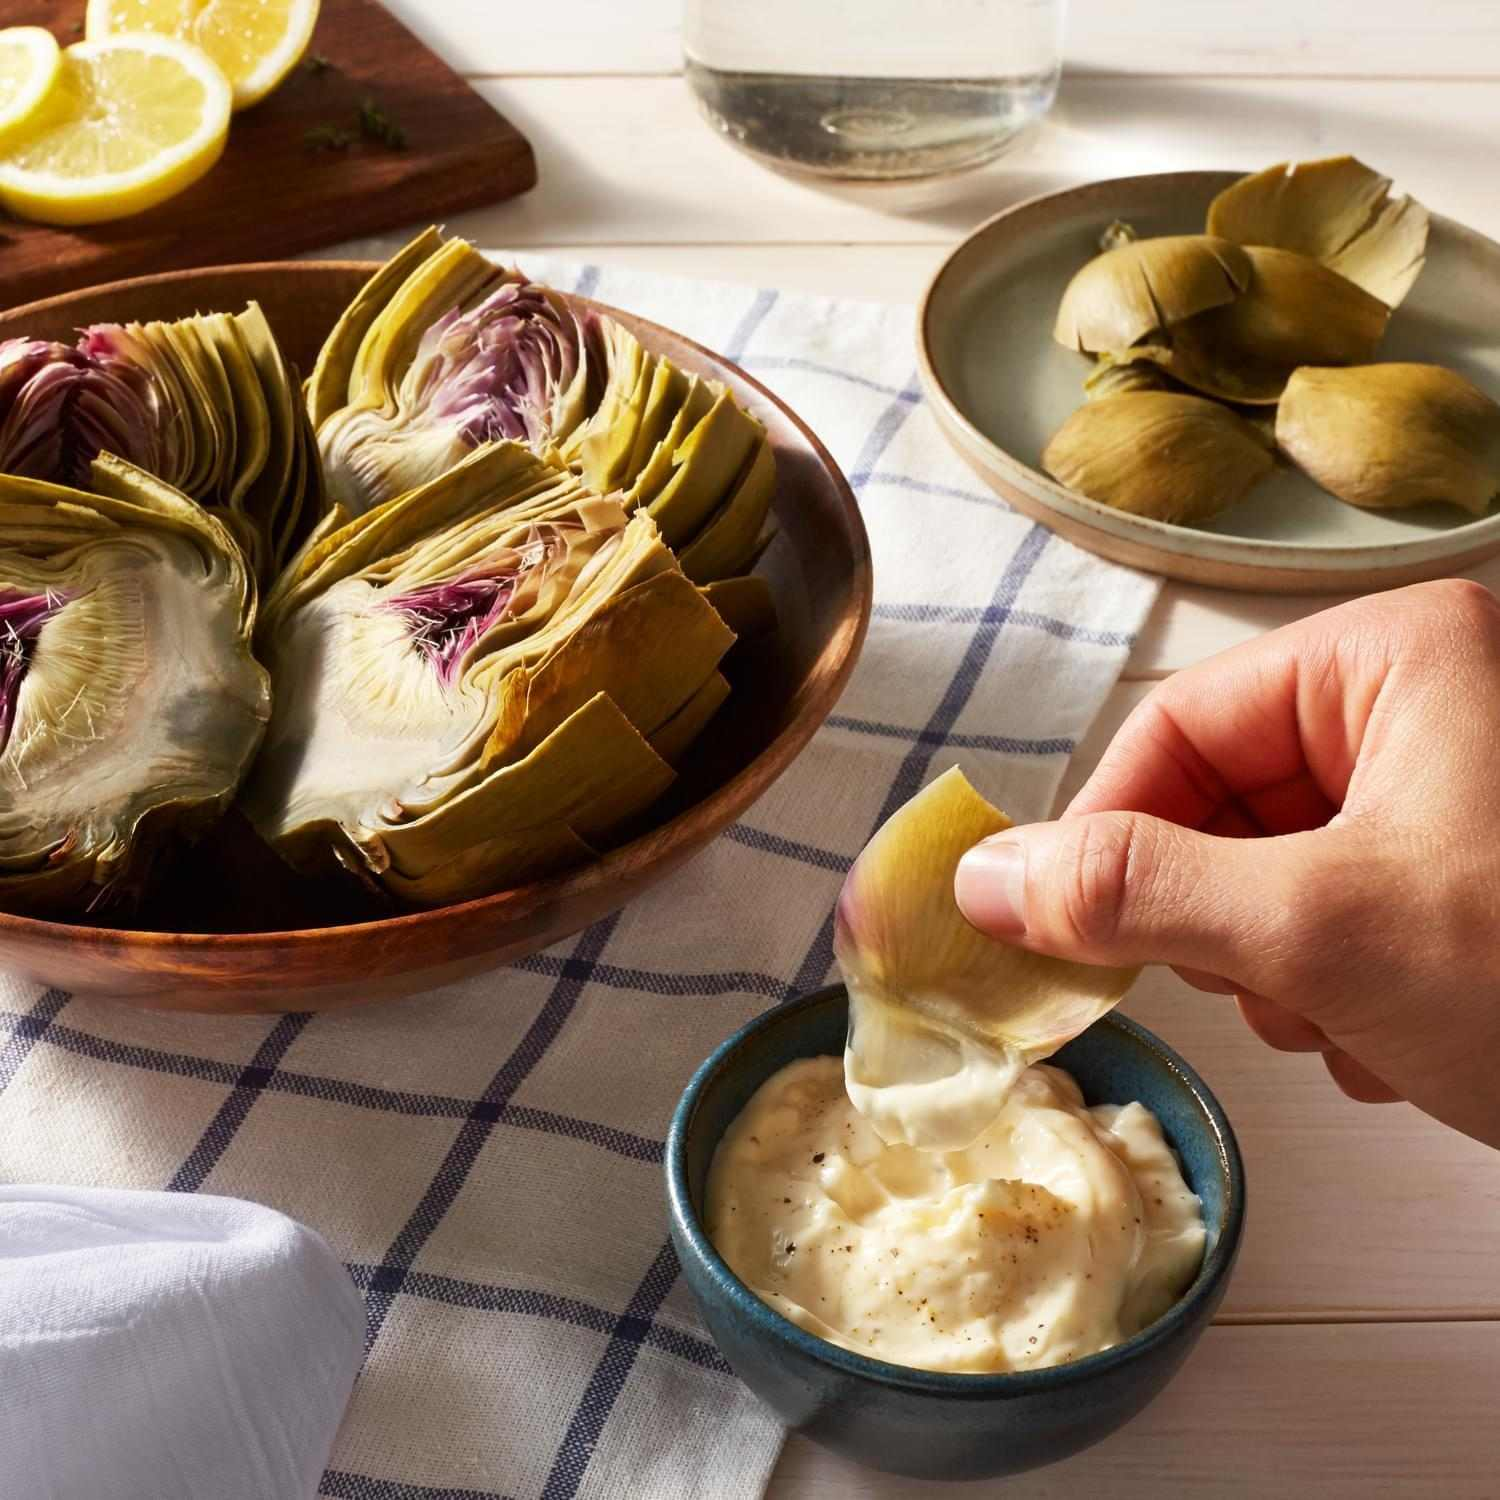 Steamed Artichokes with Lemon Aioli image